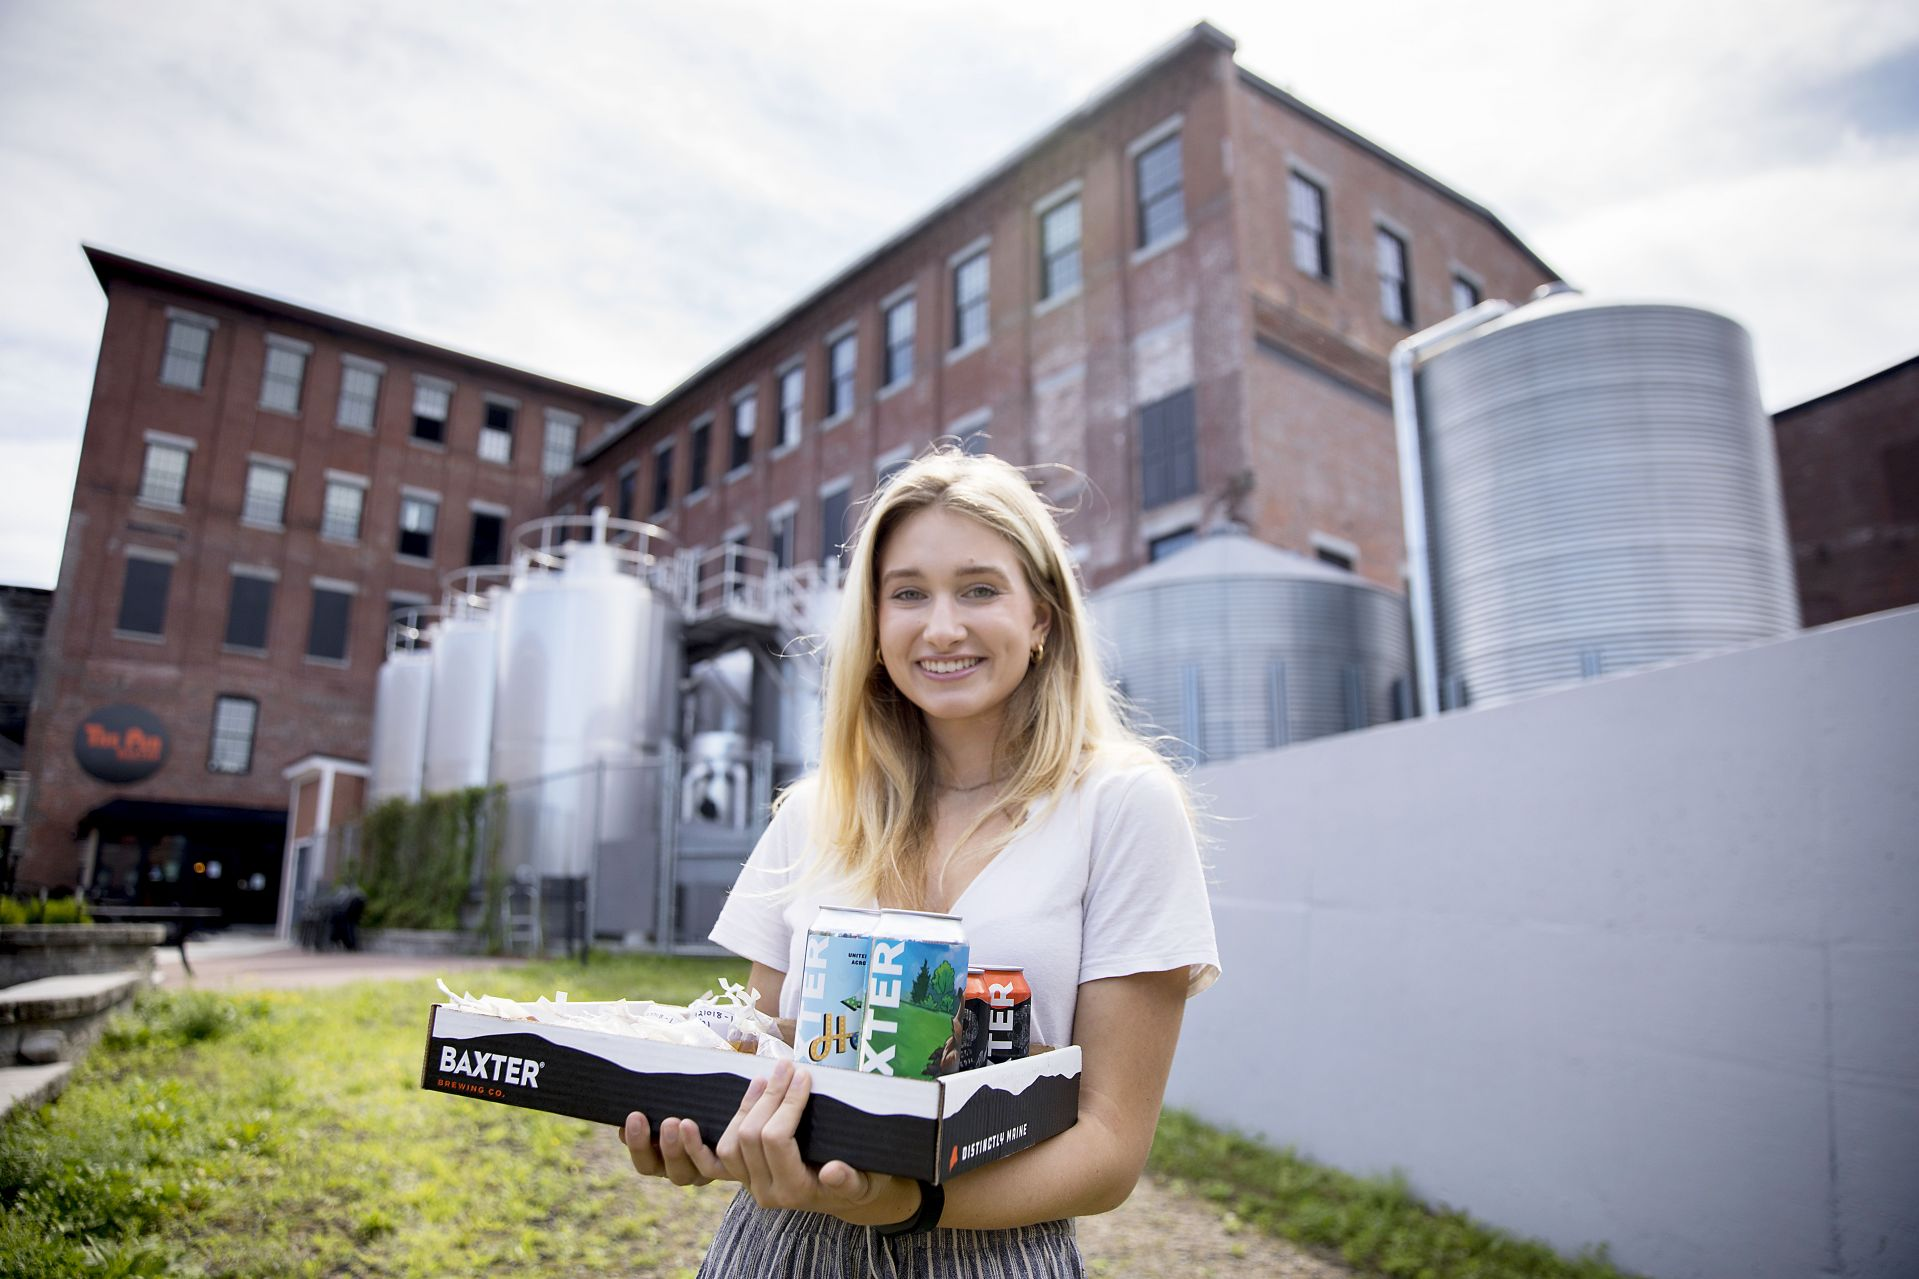 Emily Tamkin '22, a biology major from Lafayette, Calif., is doing a summer '21 purposeful work internship tin brewing science, partnering with the Baxter Brewing Co. in Lewiston, where she's studying the number of battering compounds that exist in beer throughout the brewing process. She is working under the supervision of Merritt Waldron, Baxter's quality control manager, and Assistant Professor of Biology Lori Banks.  Emily picks up samples from Baxter's plant at 130 Mill Street in Lewiston and takes them to Carnegie Science where, in Dr. Bank's lab, she conducts a chemical analysis of them. The compounds hit your taste buds, and your brain understands that they are bitter, she says.